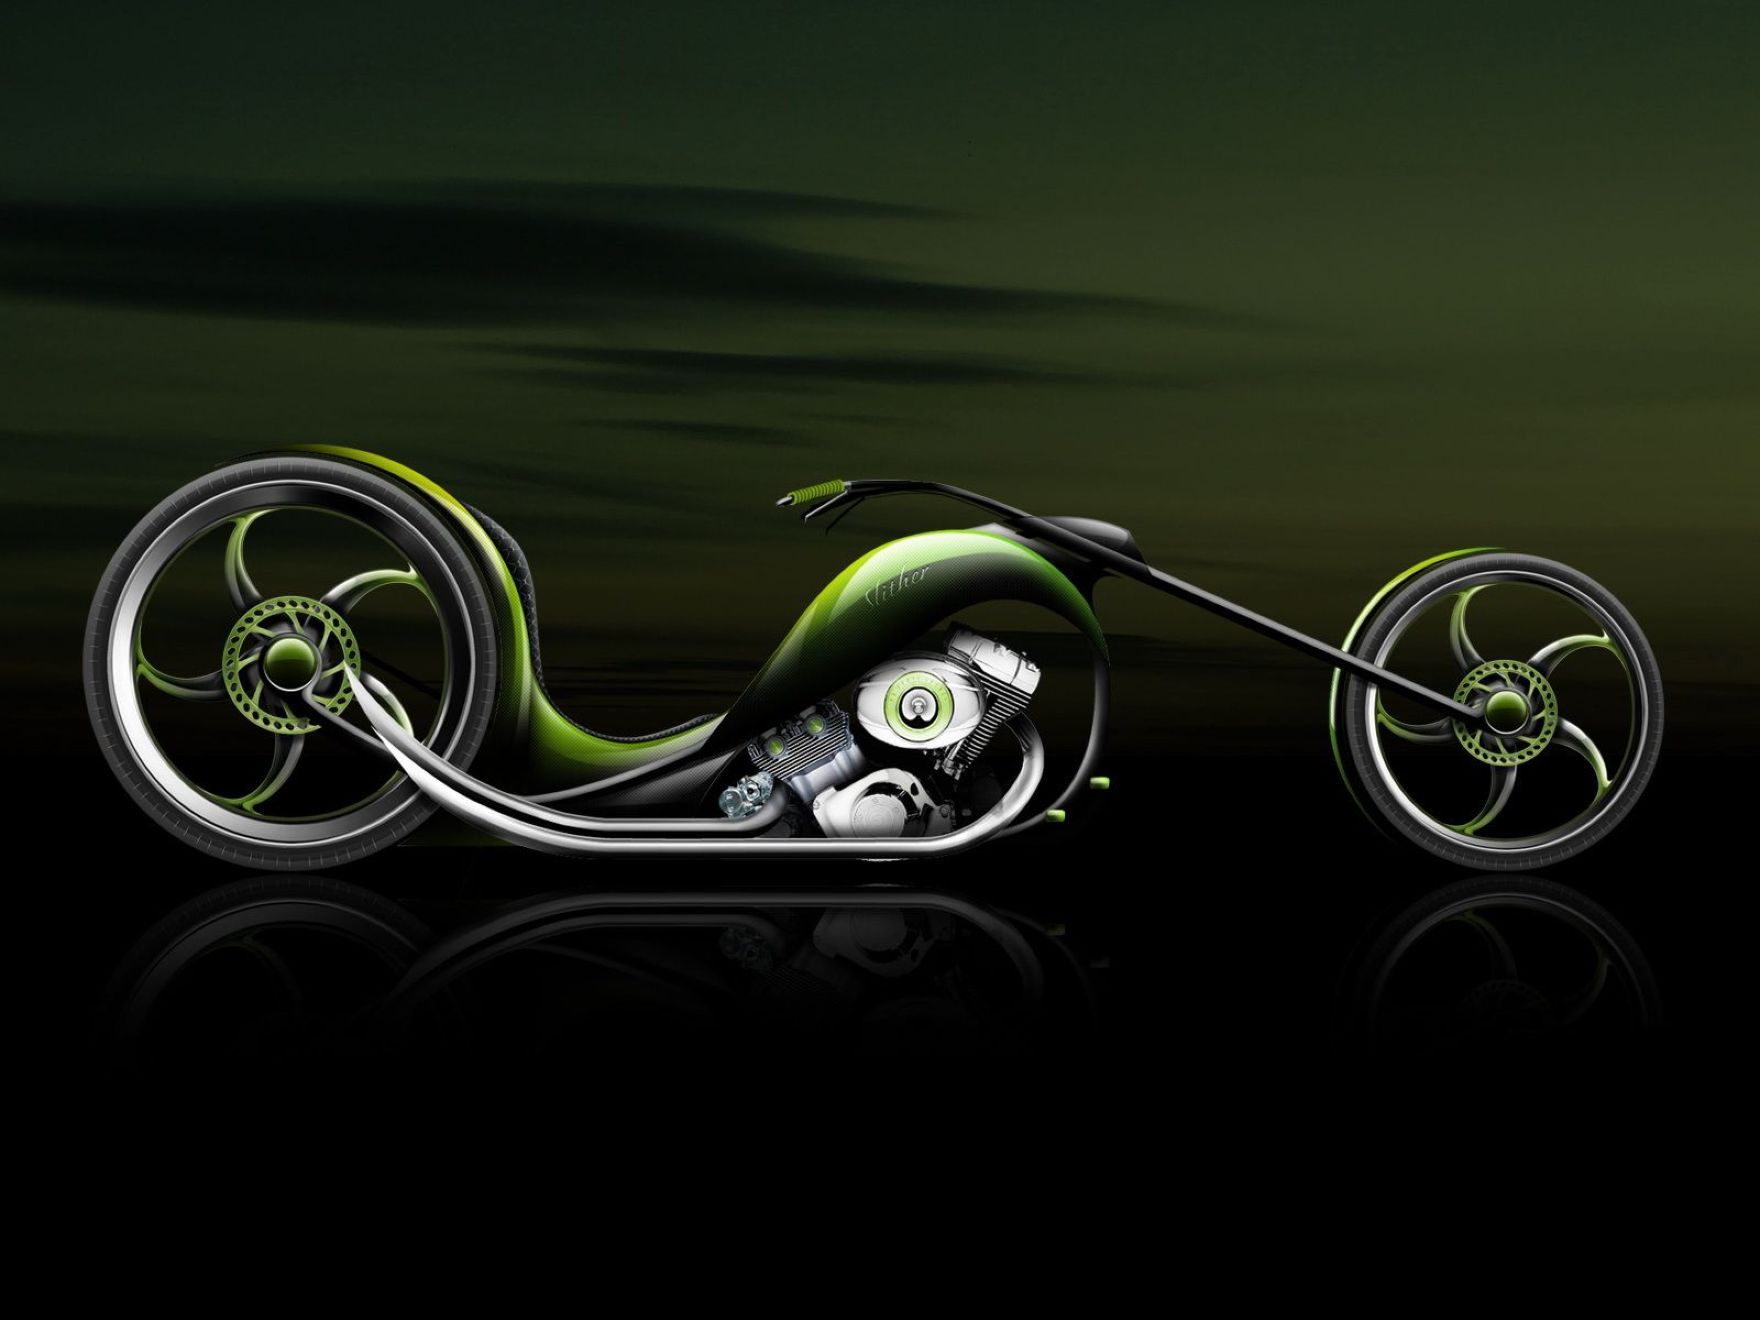 desktop 3d bike animation for window 7 wallpaper: desktop hd